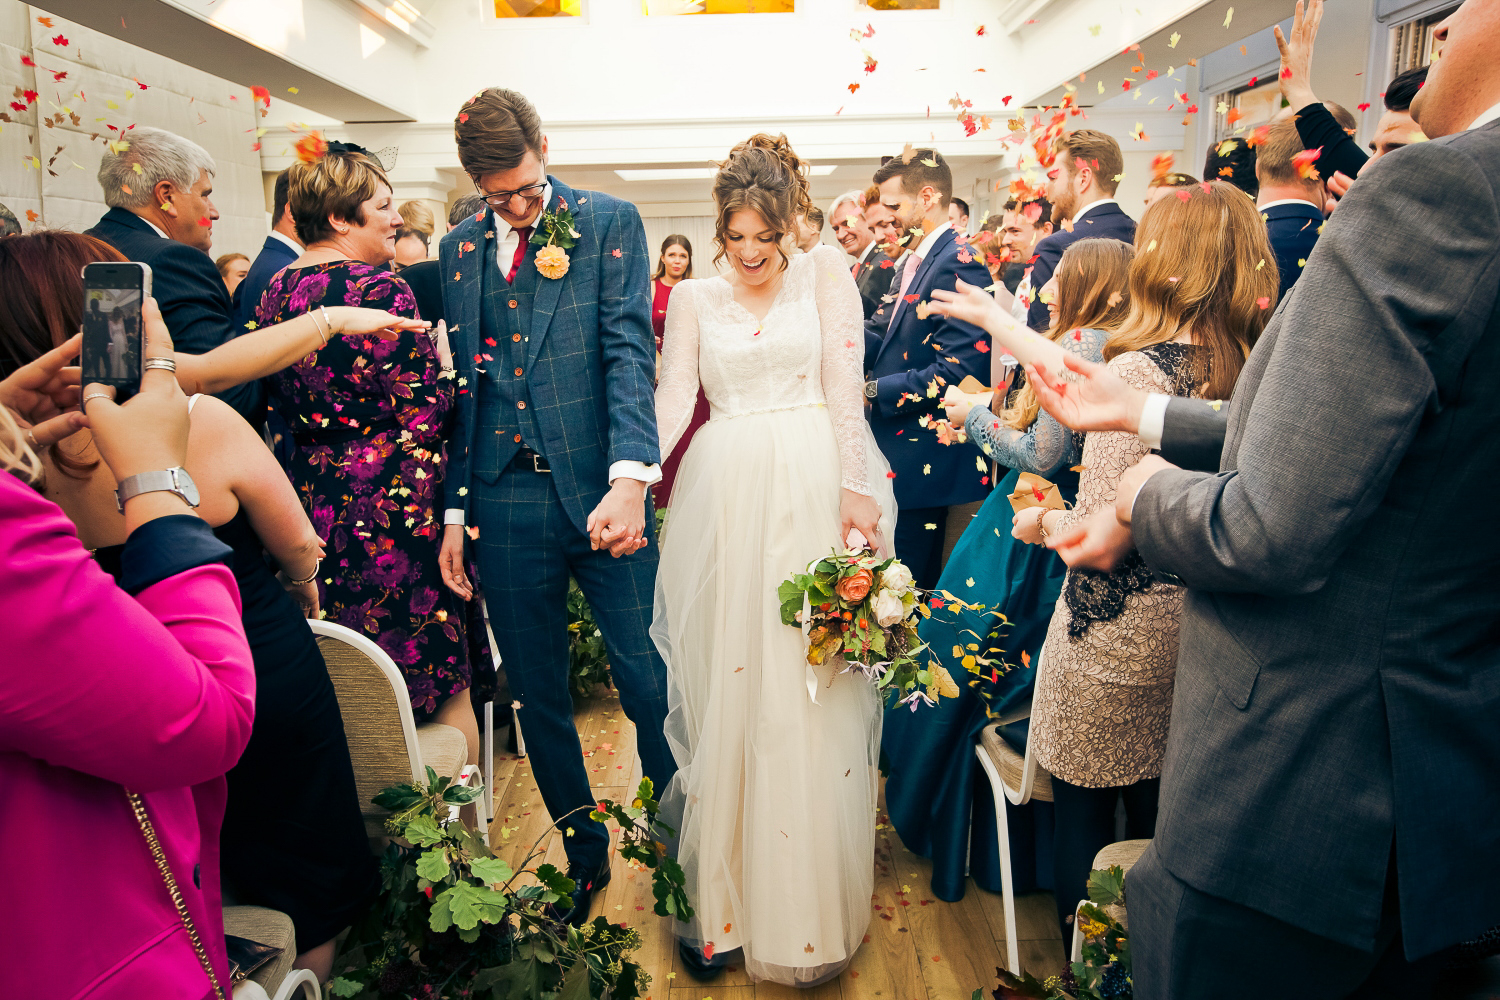 As the bride and groom walk up the aisle, confetti, hands and love fly through the room